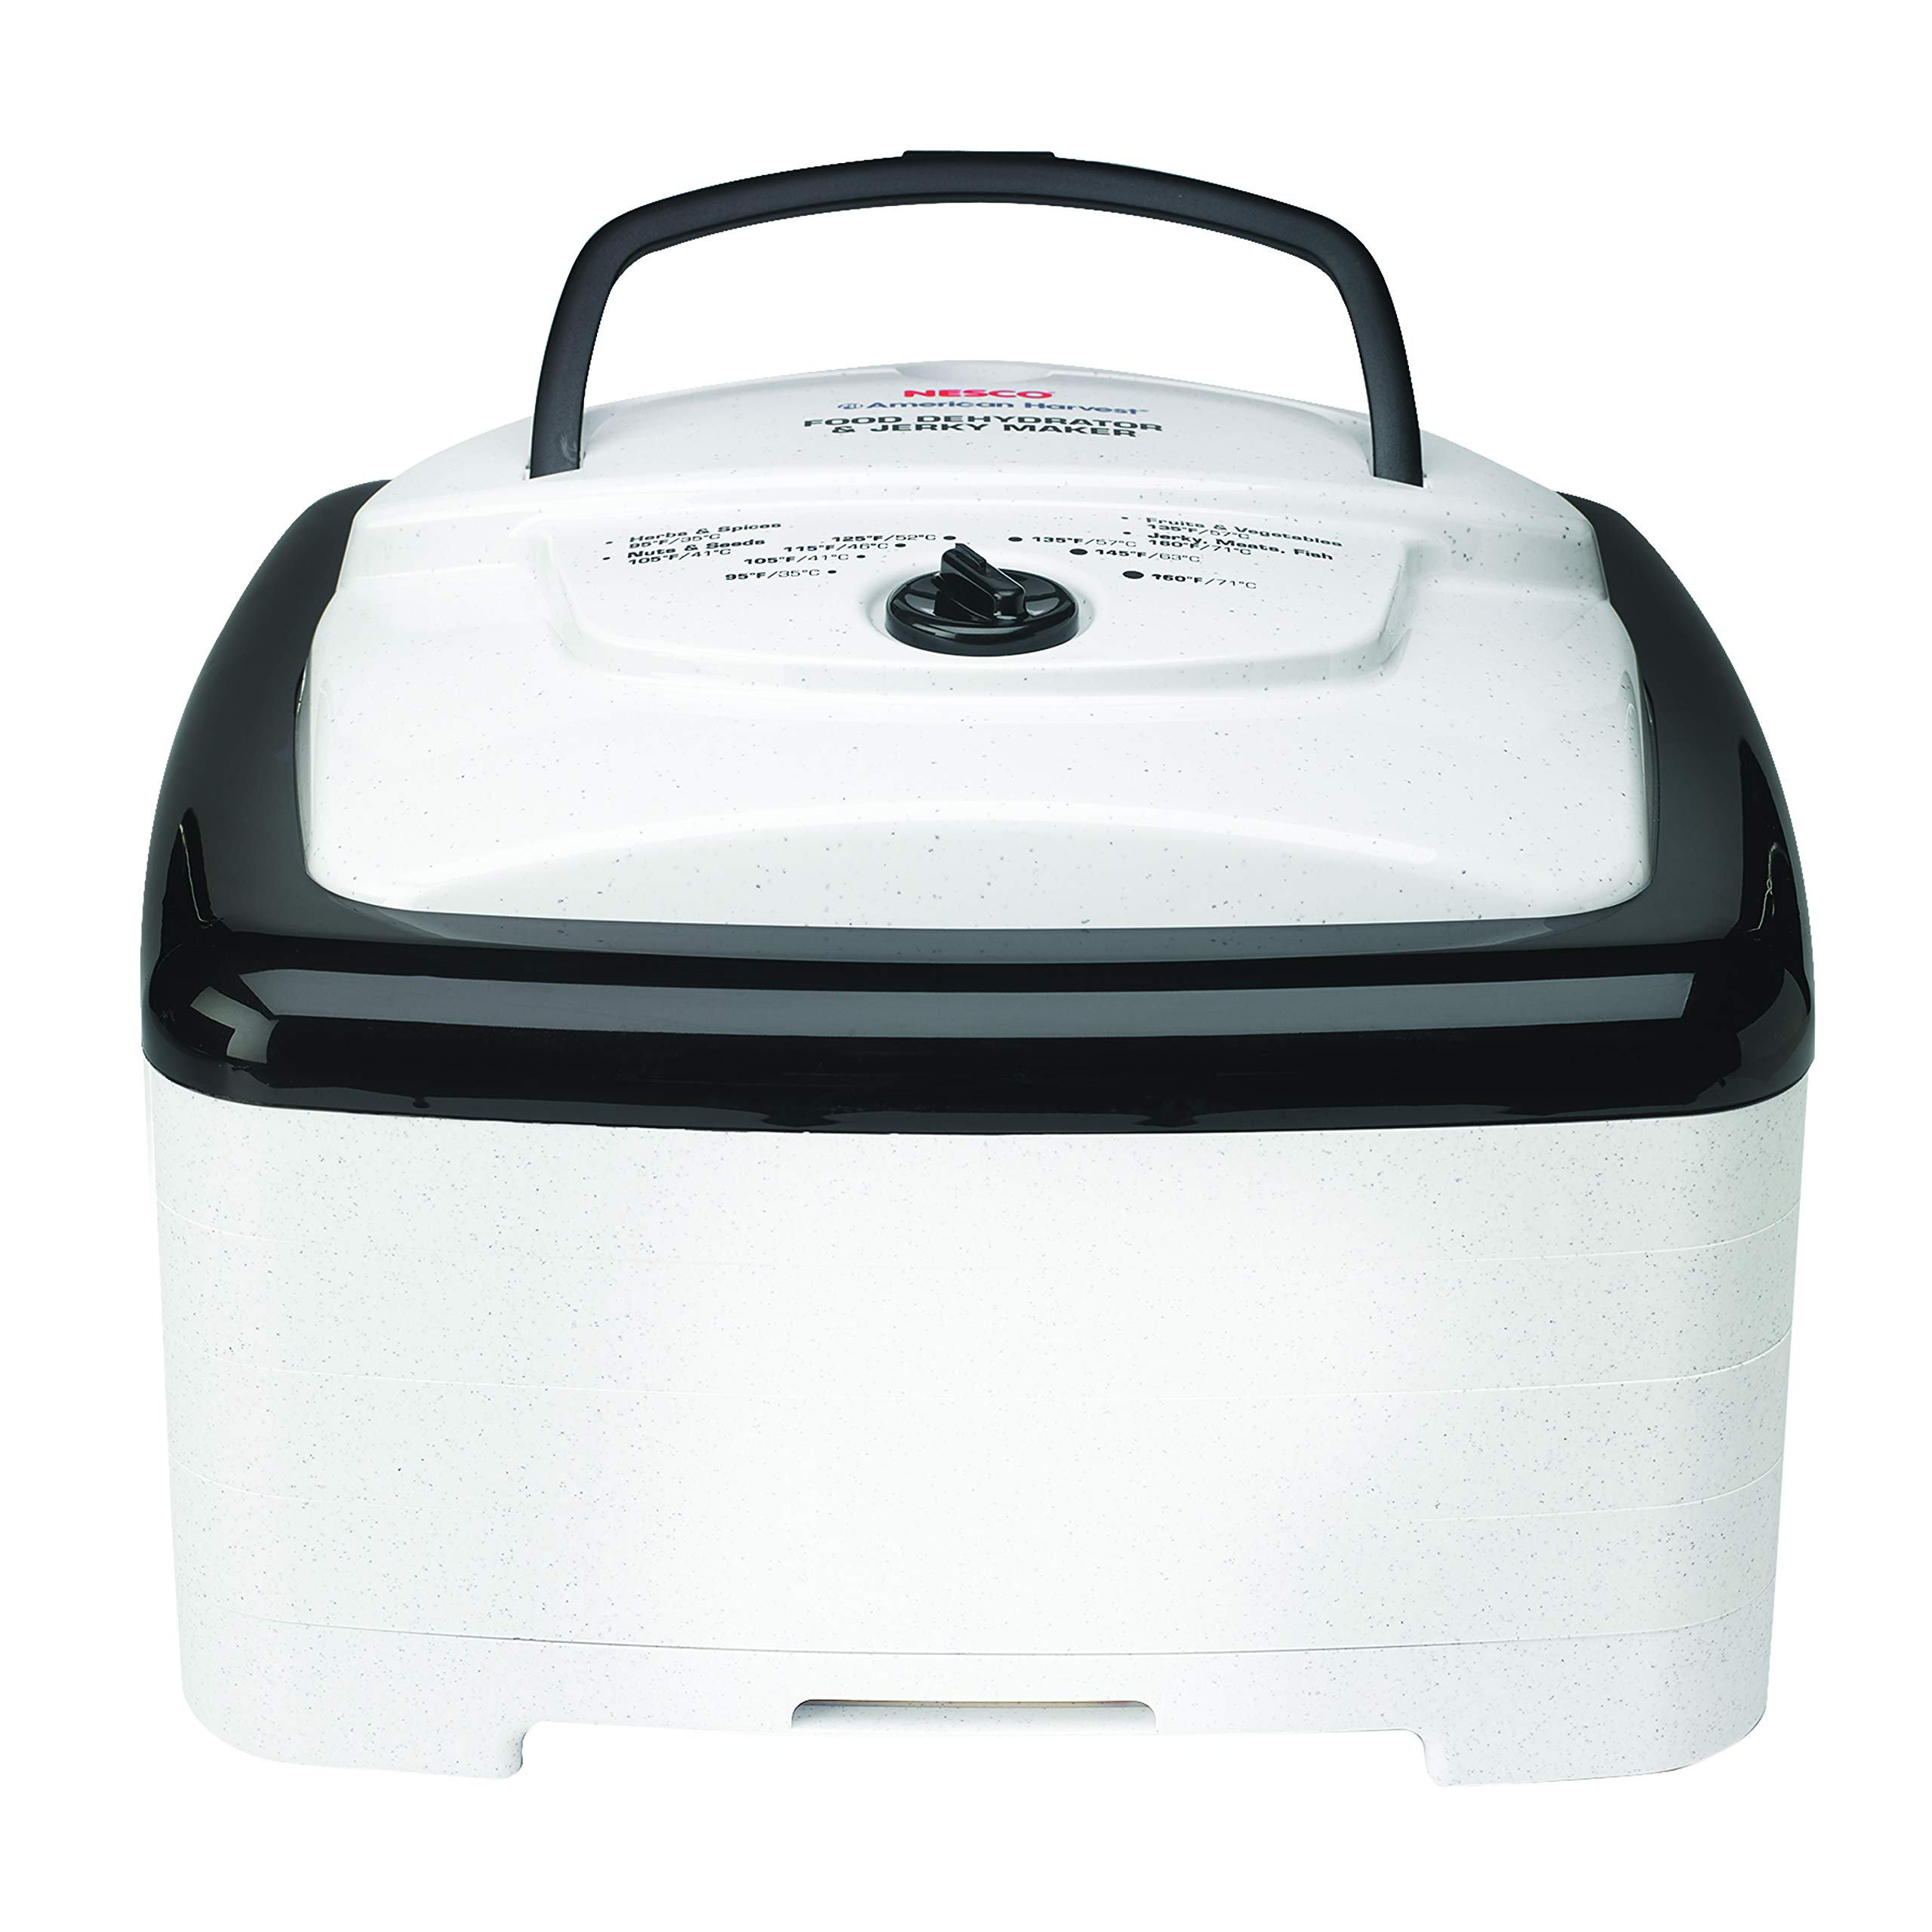 NESCO FD-80A, Square-Shaped Dehydrator, White Speckled, 700 watts by Nesco